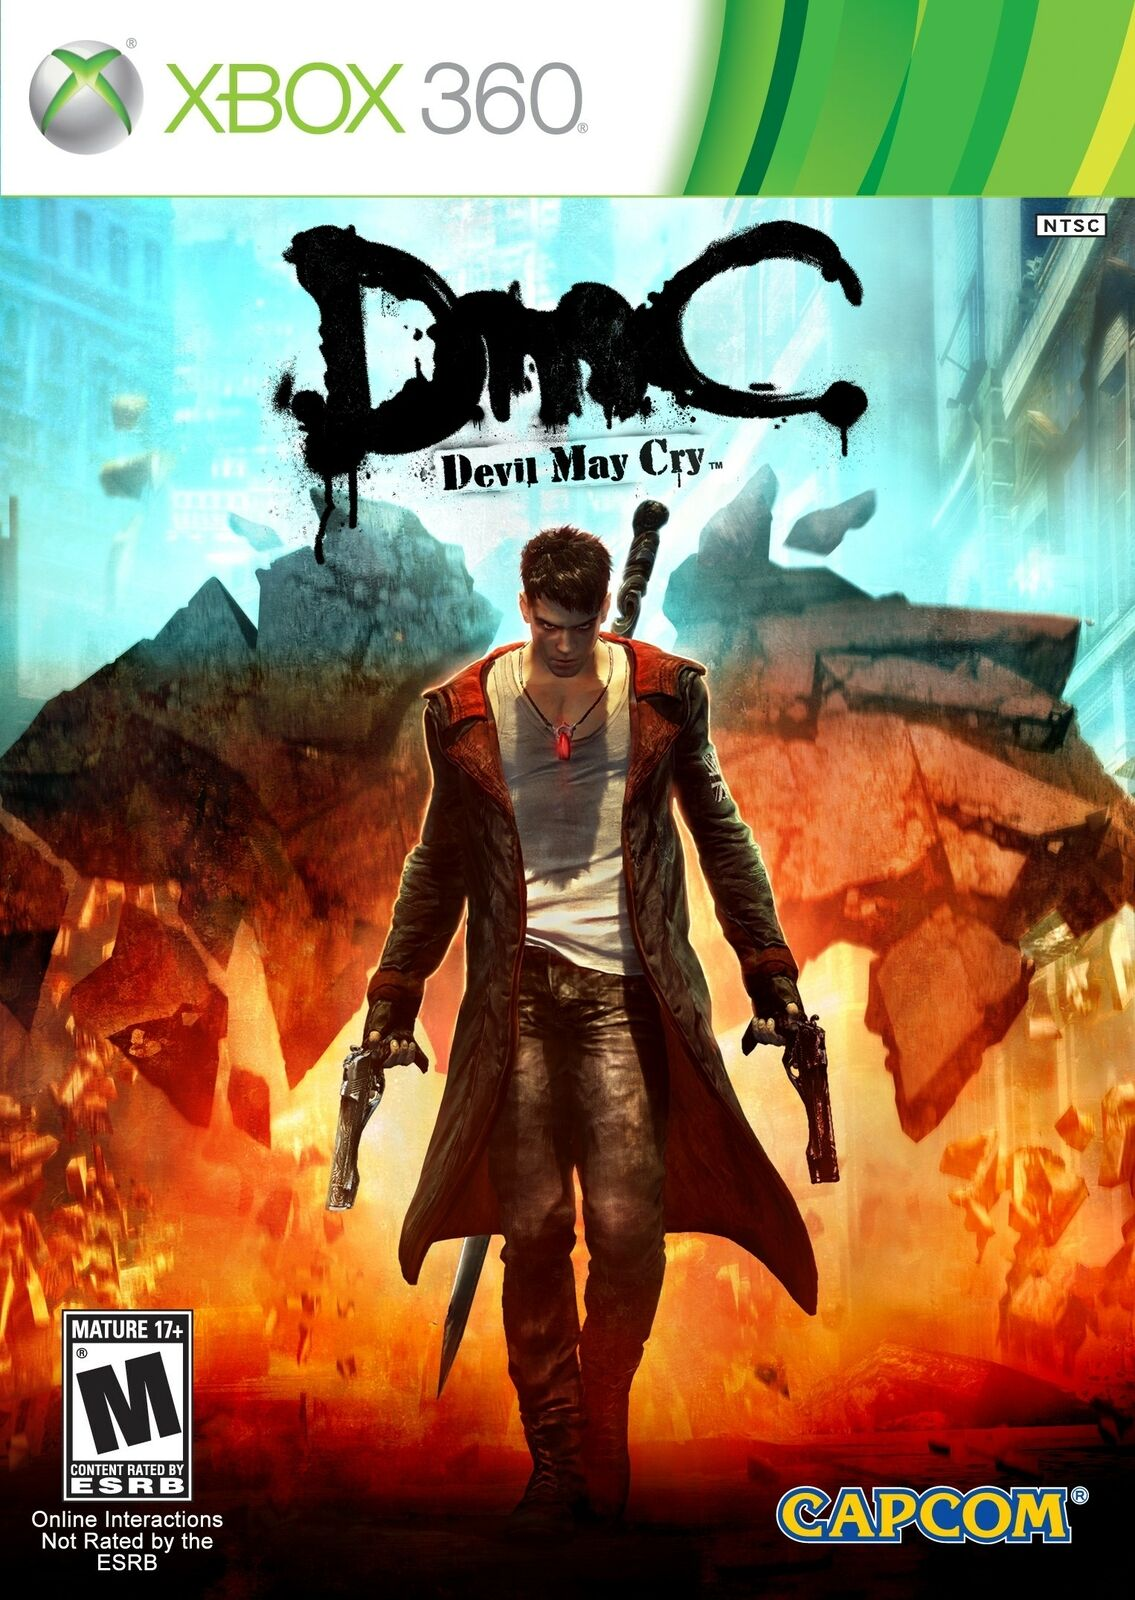 Dmc Devil May Cry Xbox 360 Game - $5.47